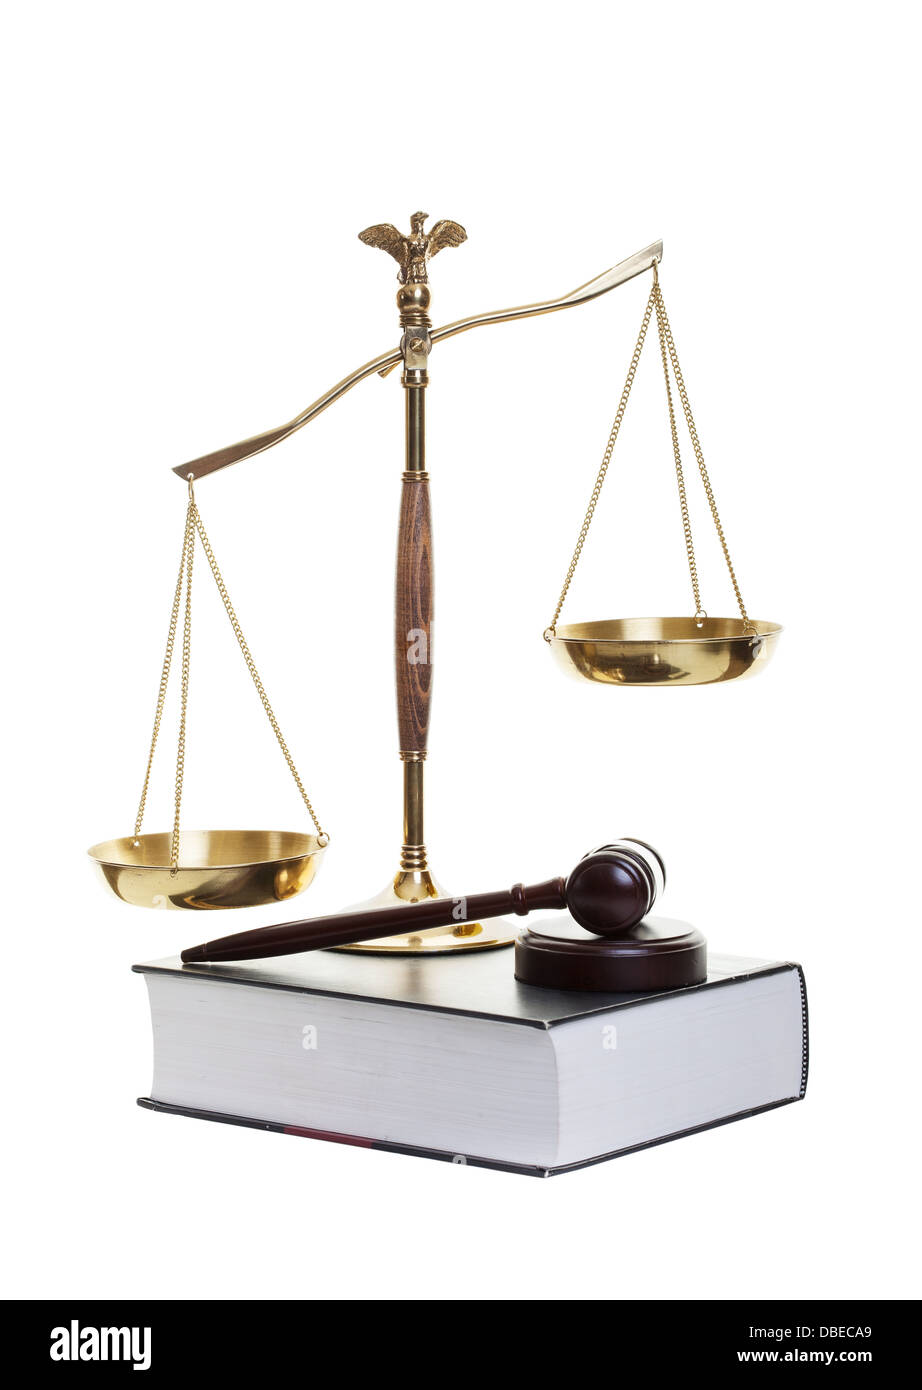 Golden scales of justice, gavel and law book on a white background - Stock Image